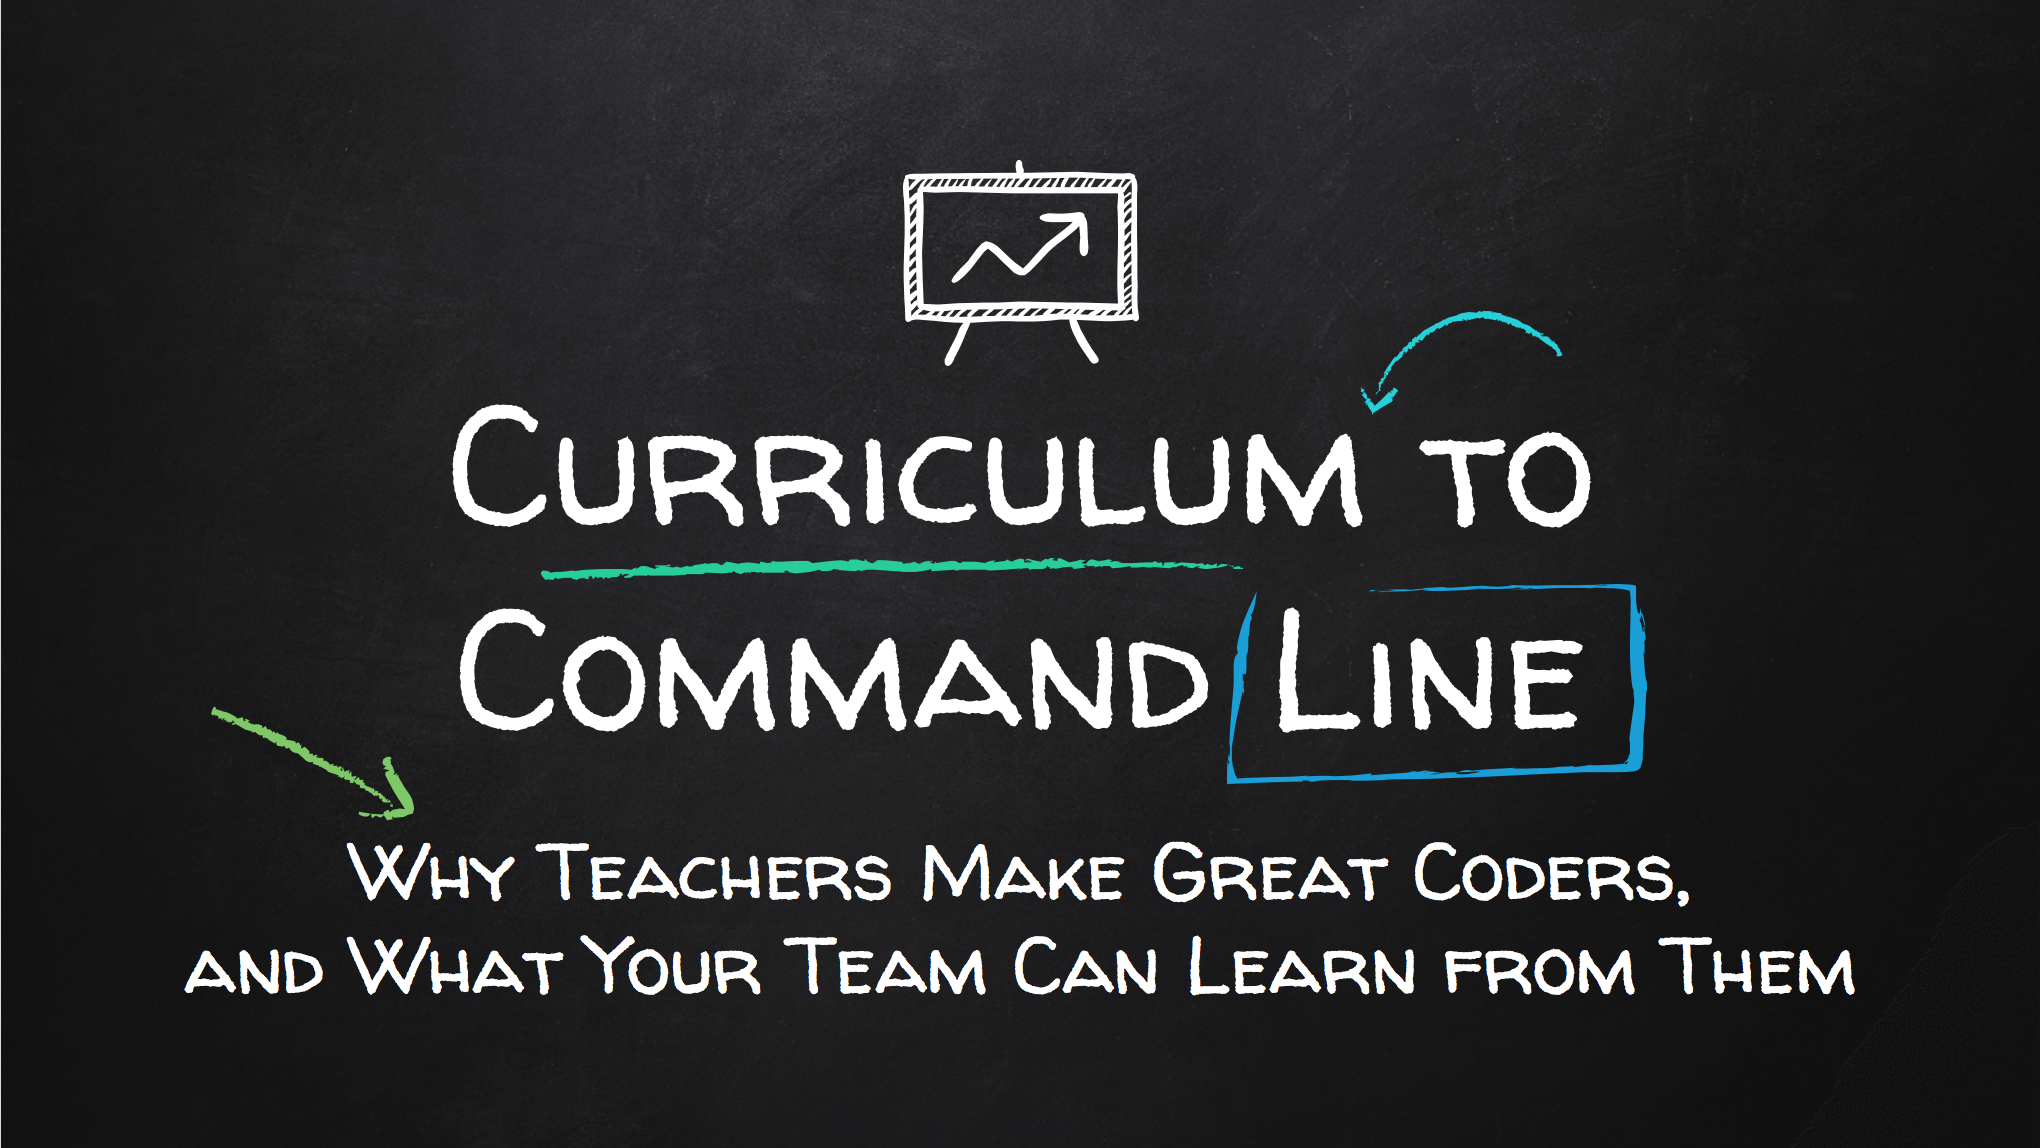 Text: Curriculum to Command Line: Why Teachers Make Awesome Coders, and What Your Team Can Learn from Them